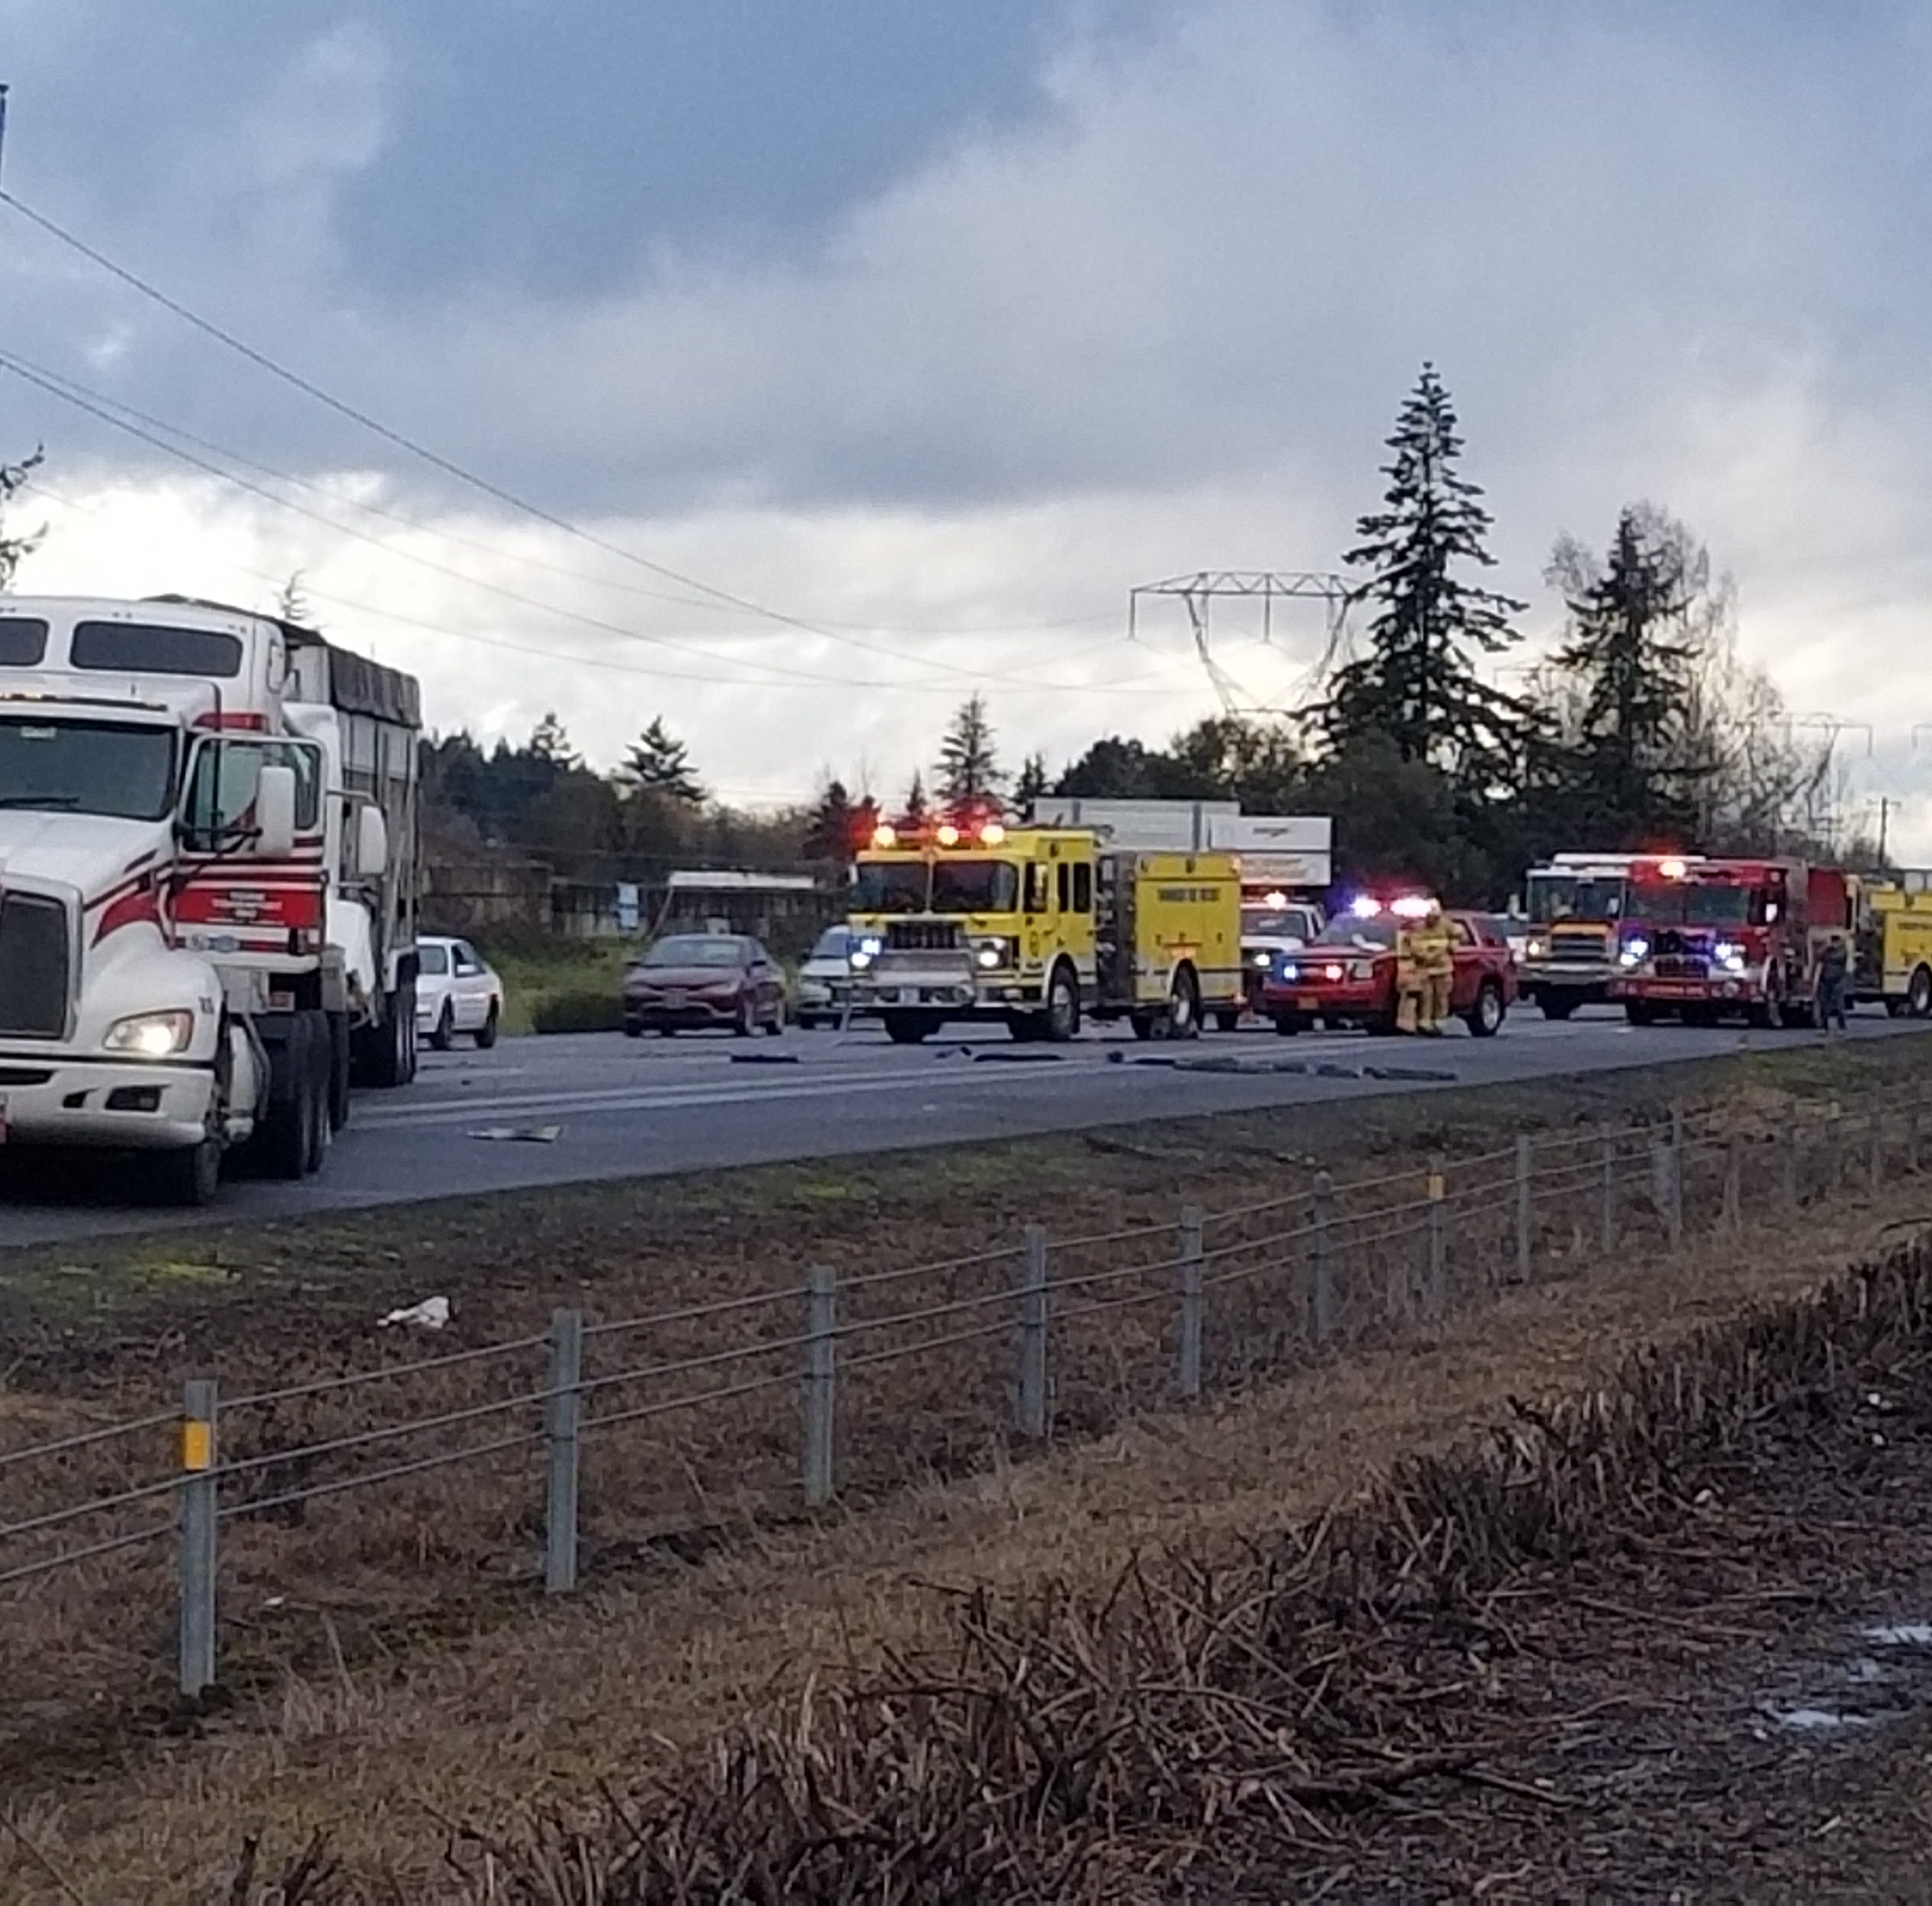 All lanes opened after I-5 crash near Woodburn